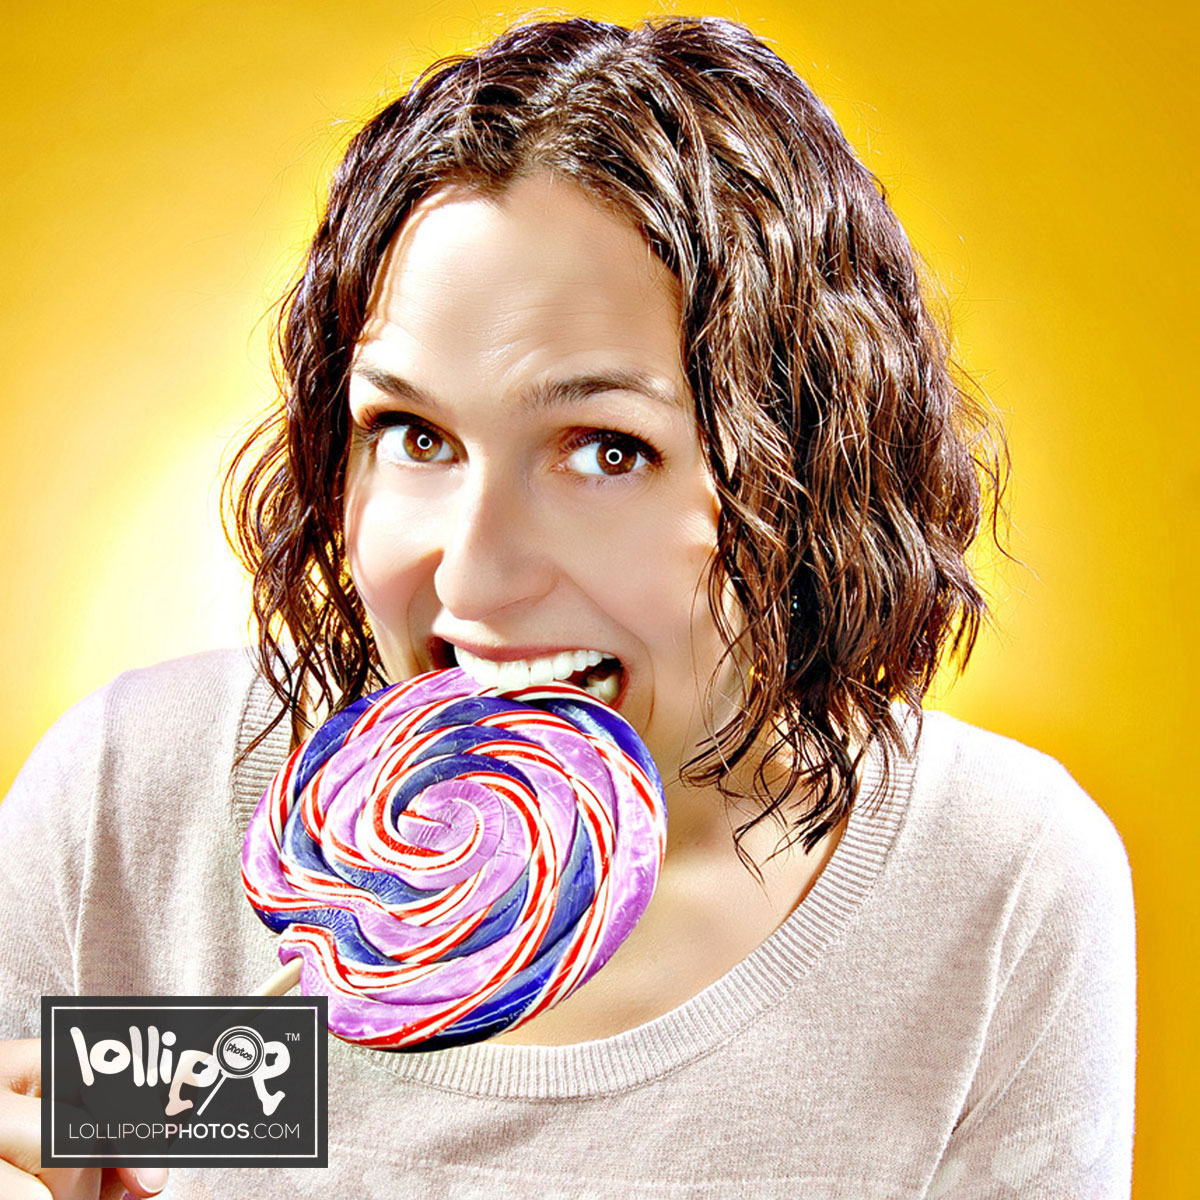 msdig-nora-canfield-lollipop-photos-304